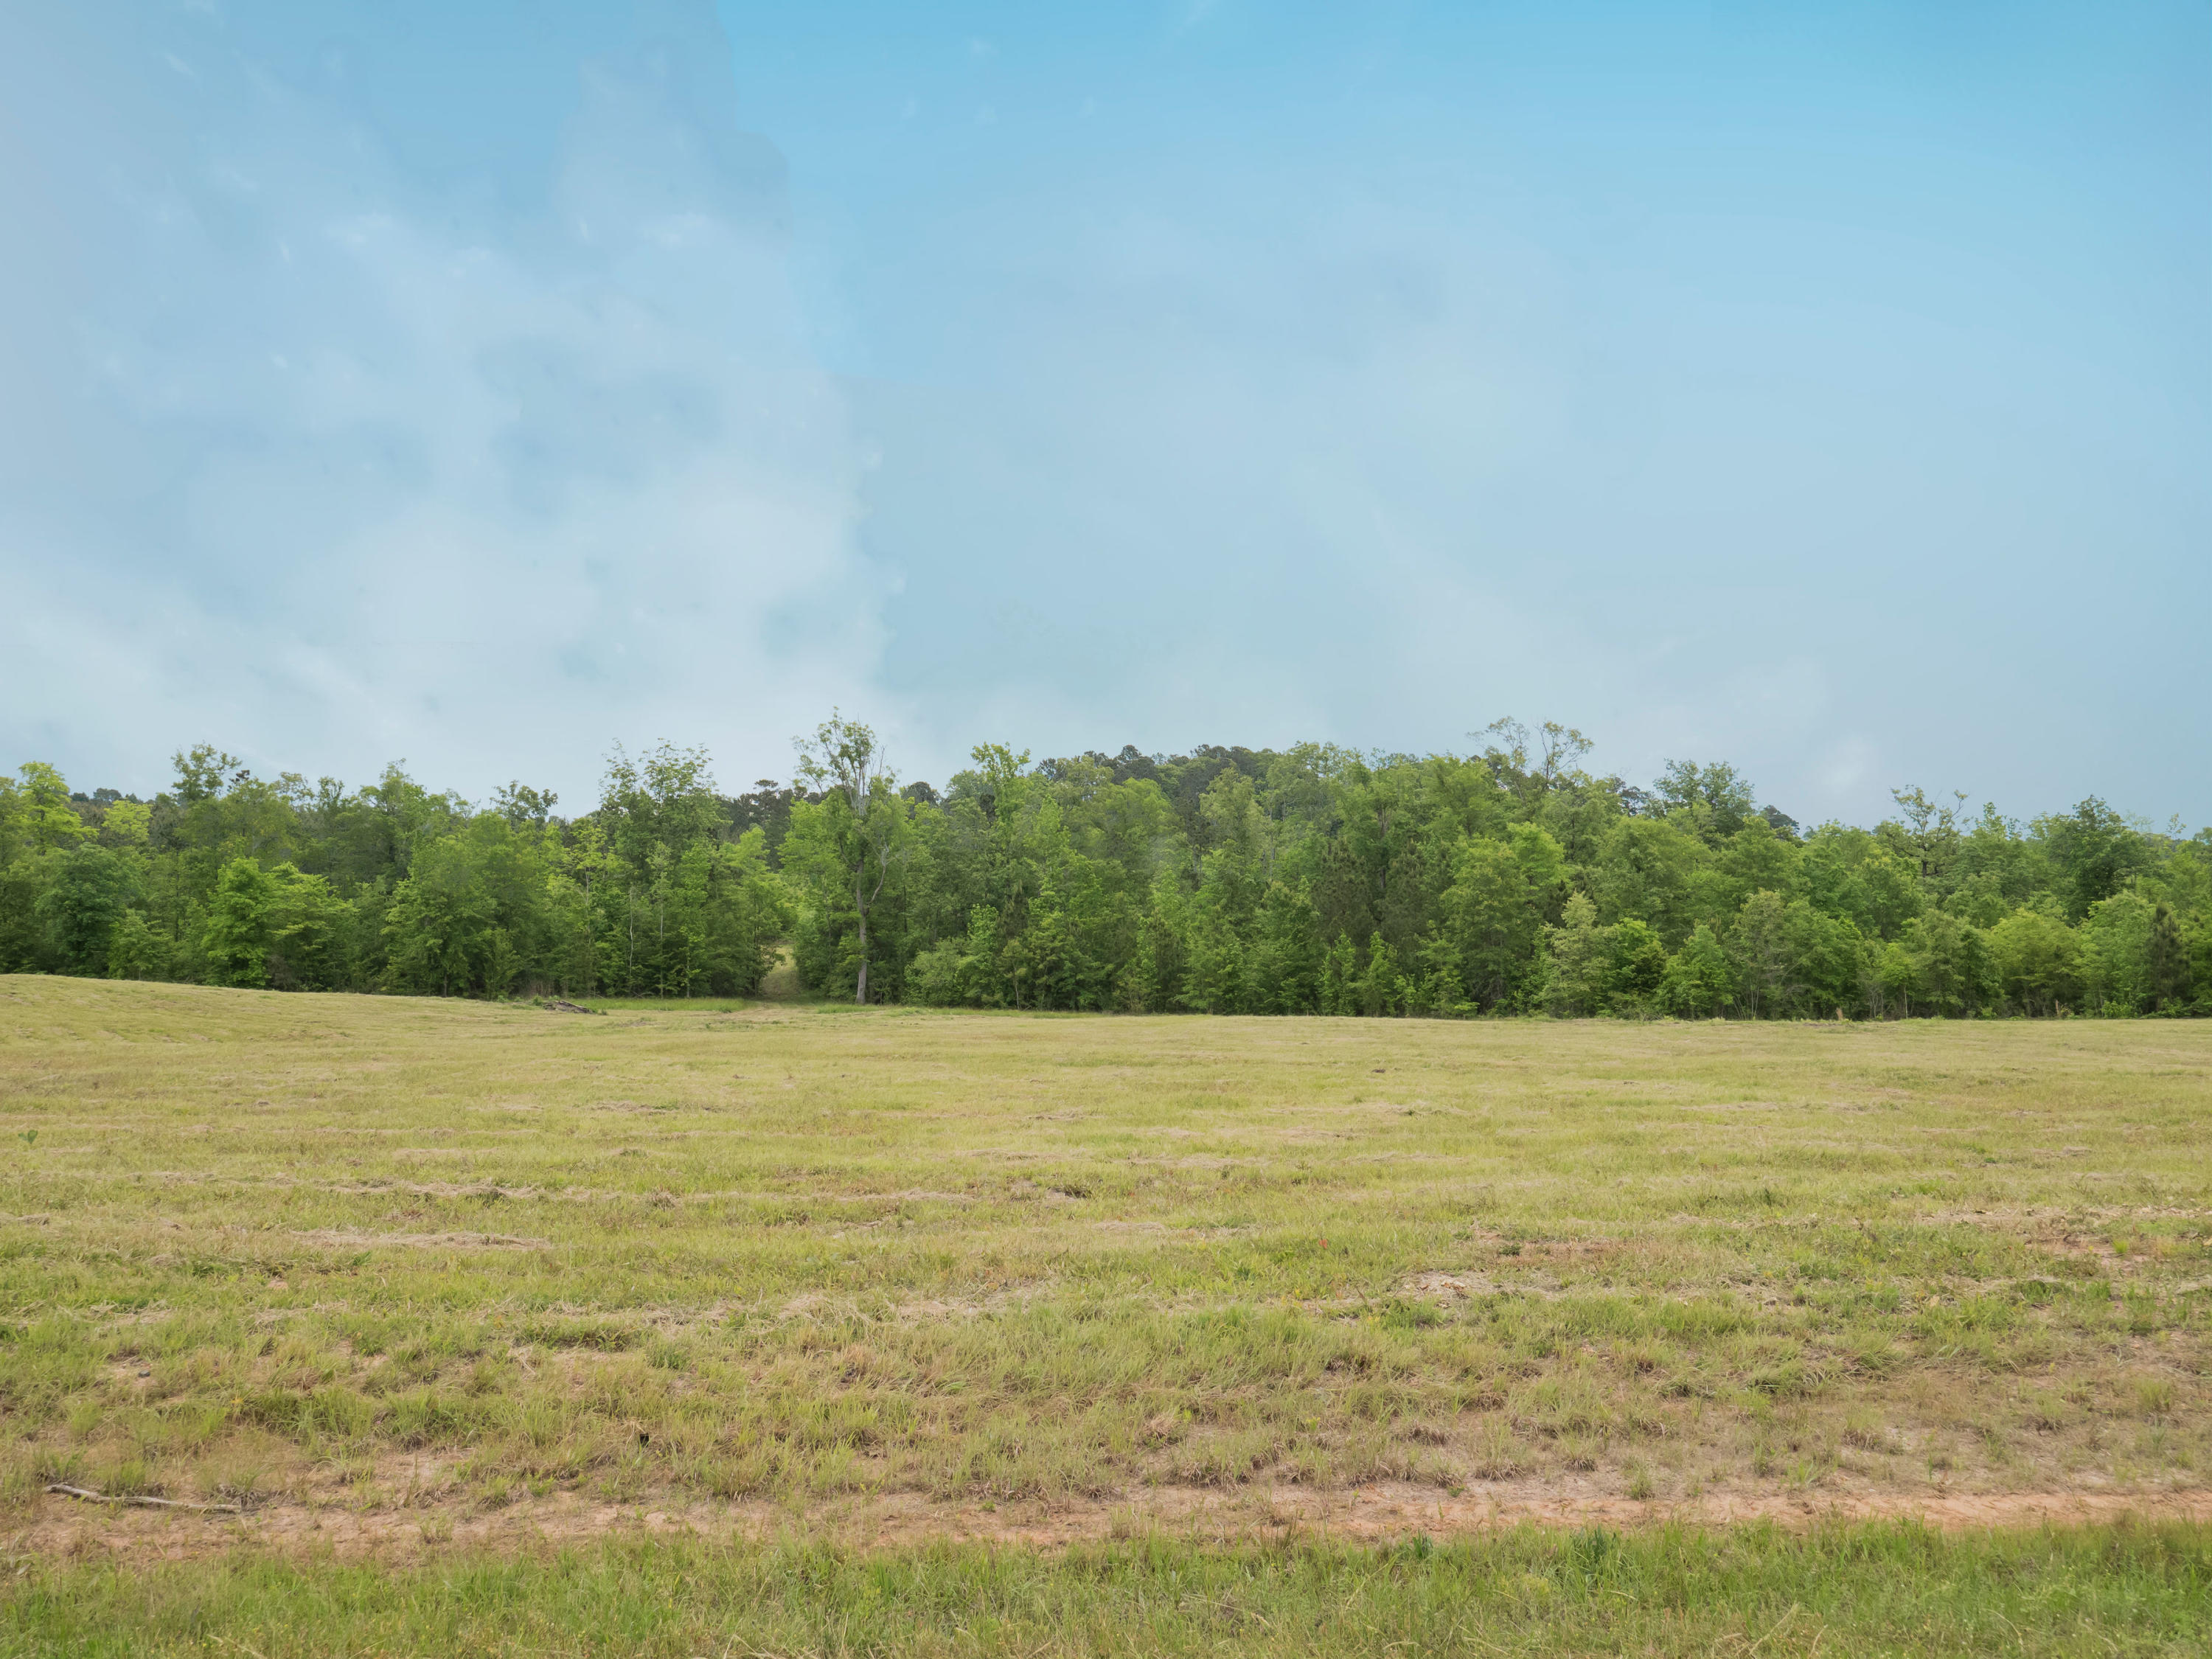 Anacoco land for sale,  Lot 7 Holly Estates Road, Anacoco LA - $45,000